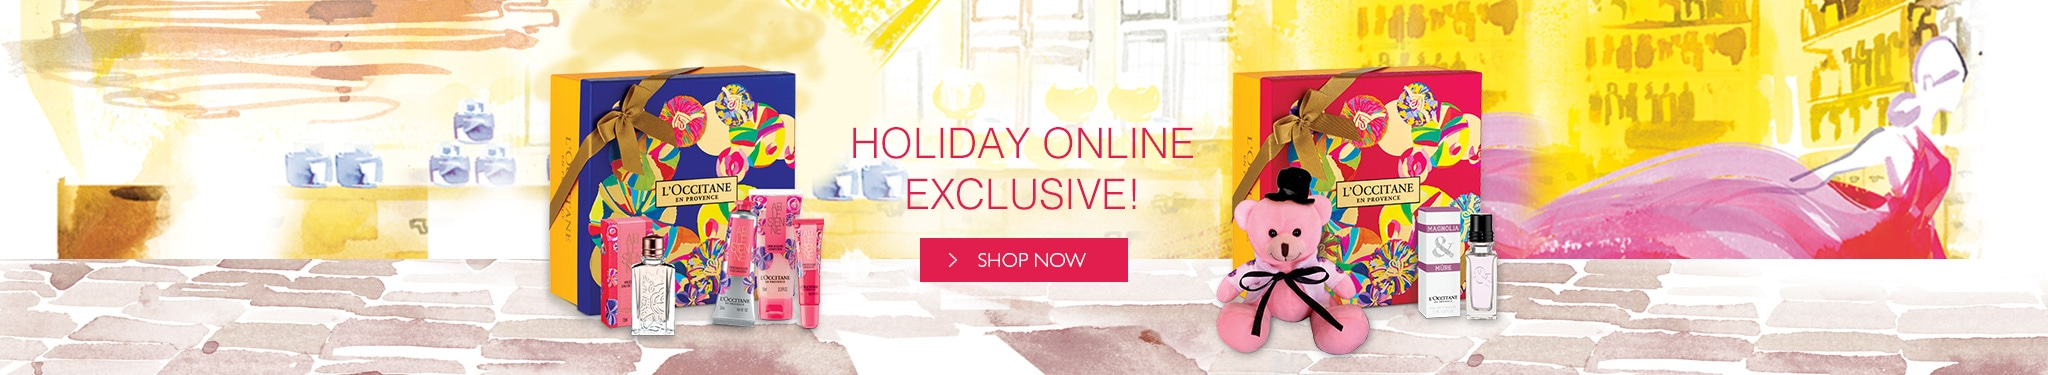 Holiday Online Exclusive